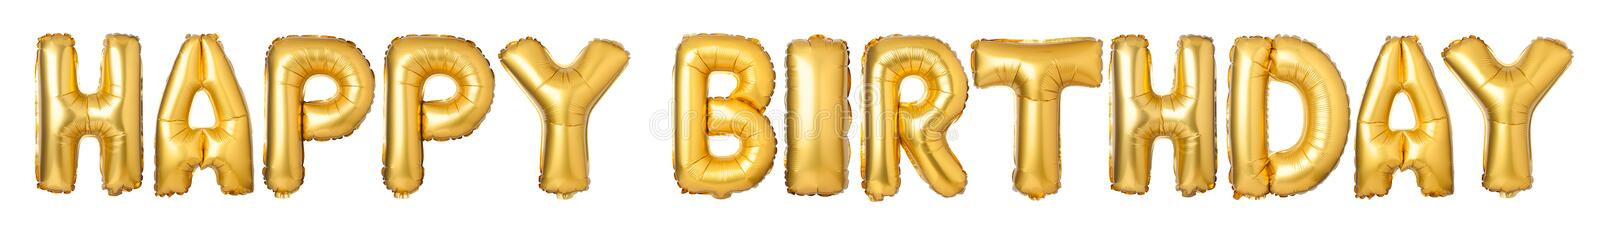 Upper case letters HAPPY BIRTHDAY from golden balloons. Isolated on white background royalty free stock photography